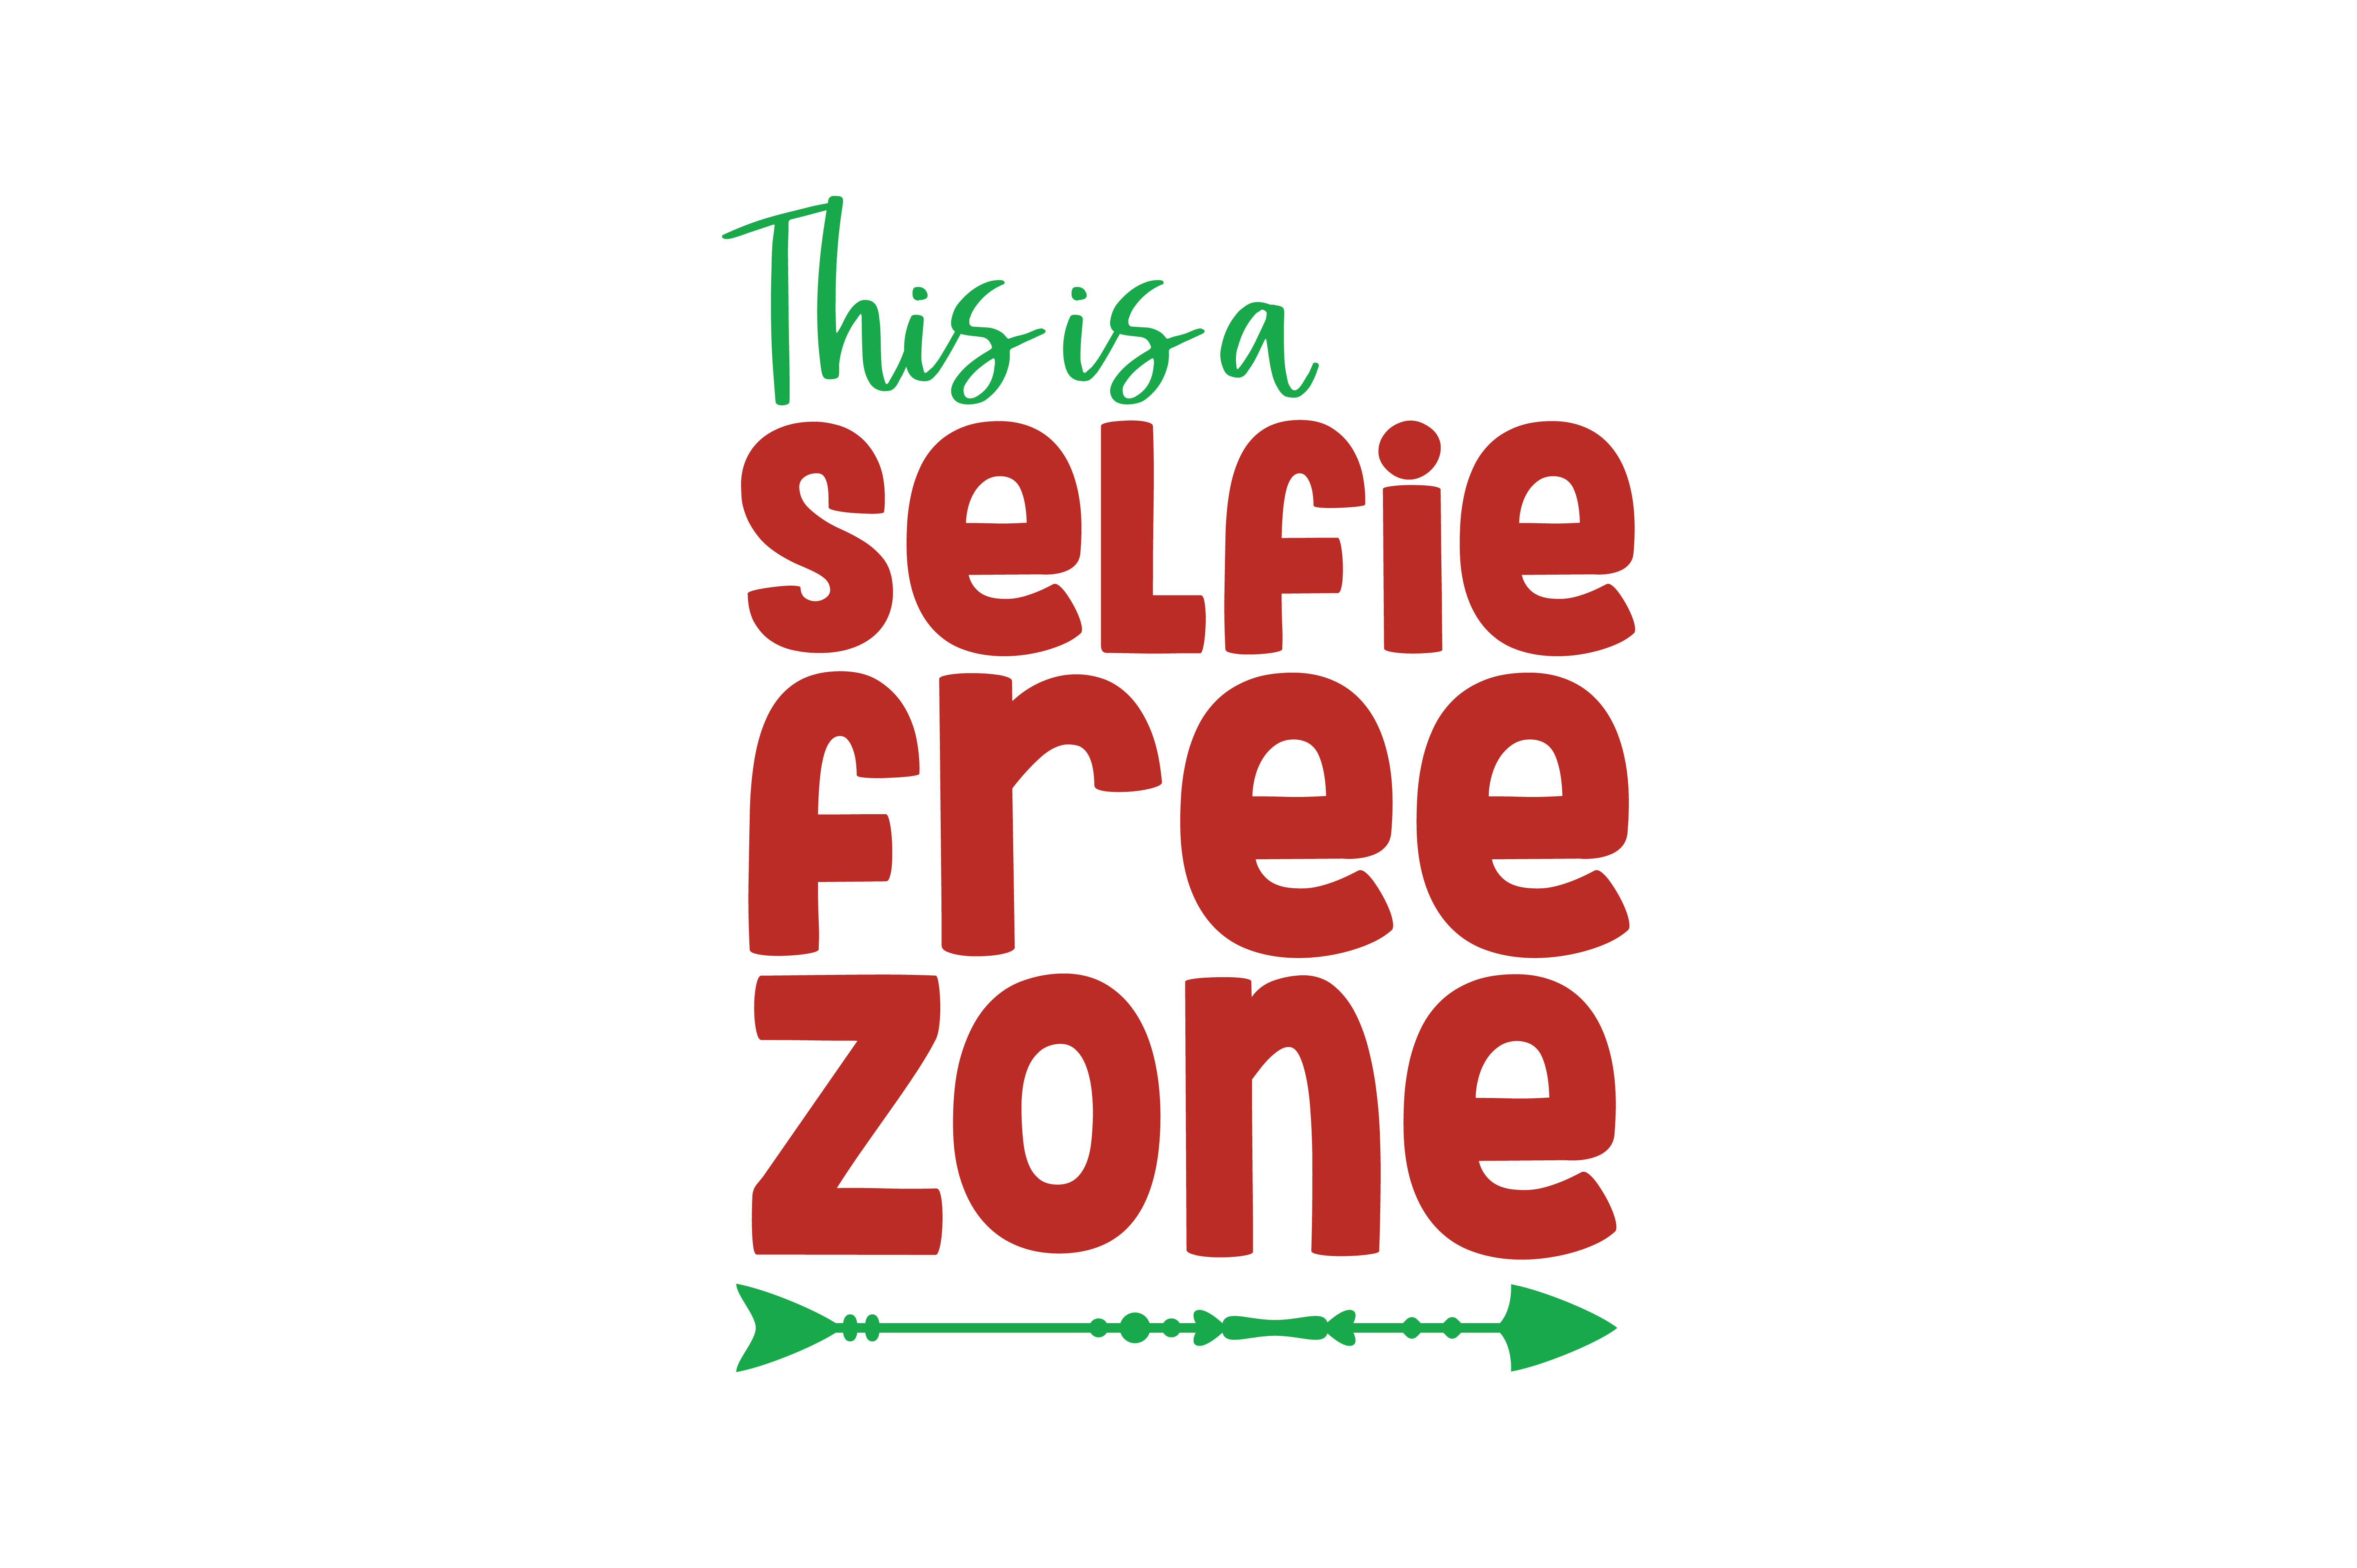 Download Free This Is A Selfie Free Zone Quote Svg Cut Graphic By Thelucky for Cricut Explore, Silhouette and other cutting machines.